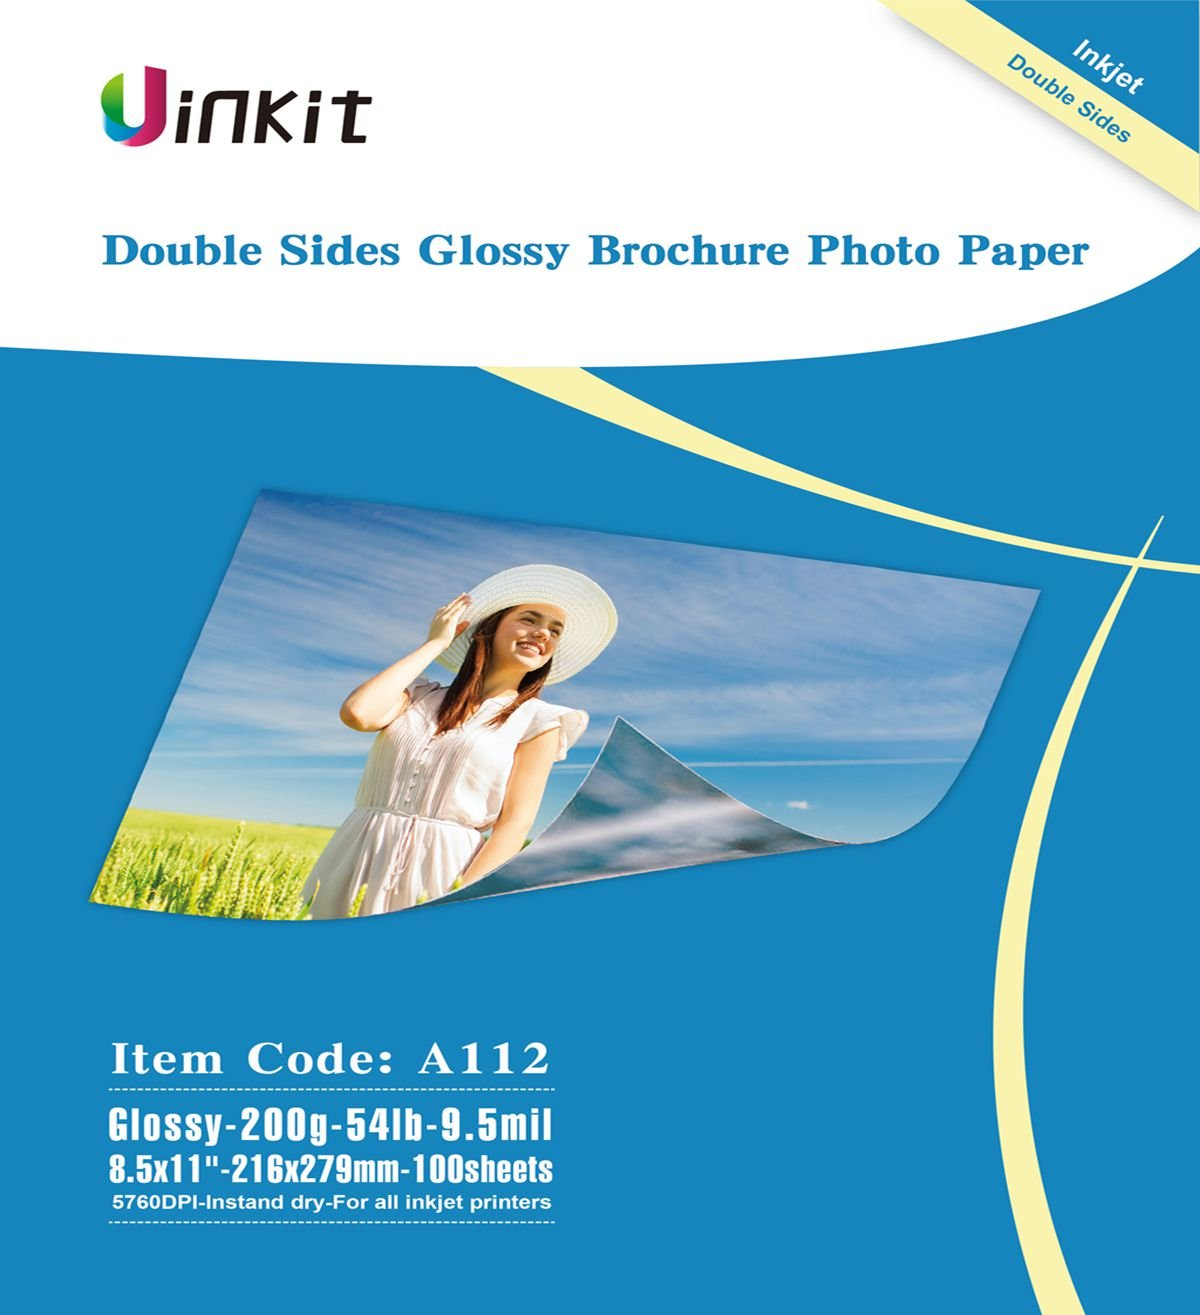 Cardstock Double Sided Glossy Photo Paper - Uinkit 8.5x11 Inches 9.5Mil 200g For Inkjet Printing Only - 100sheets